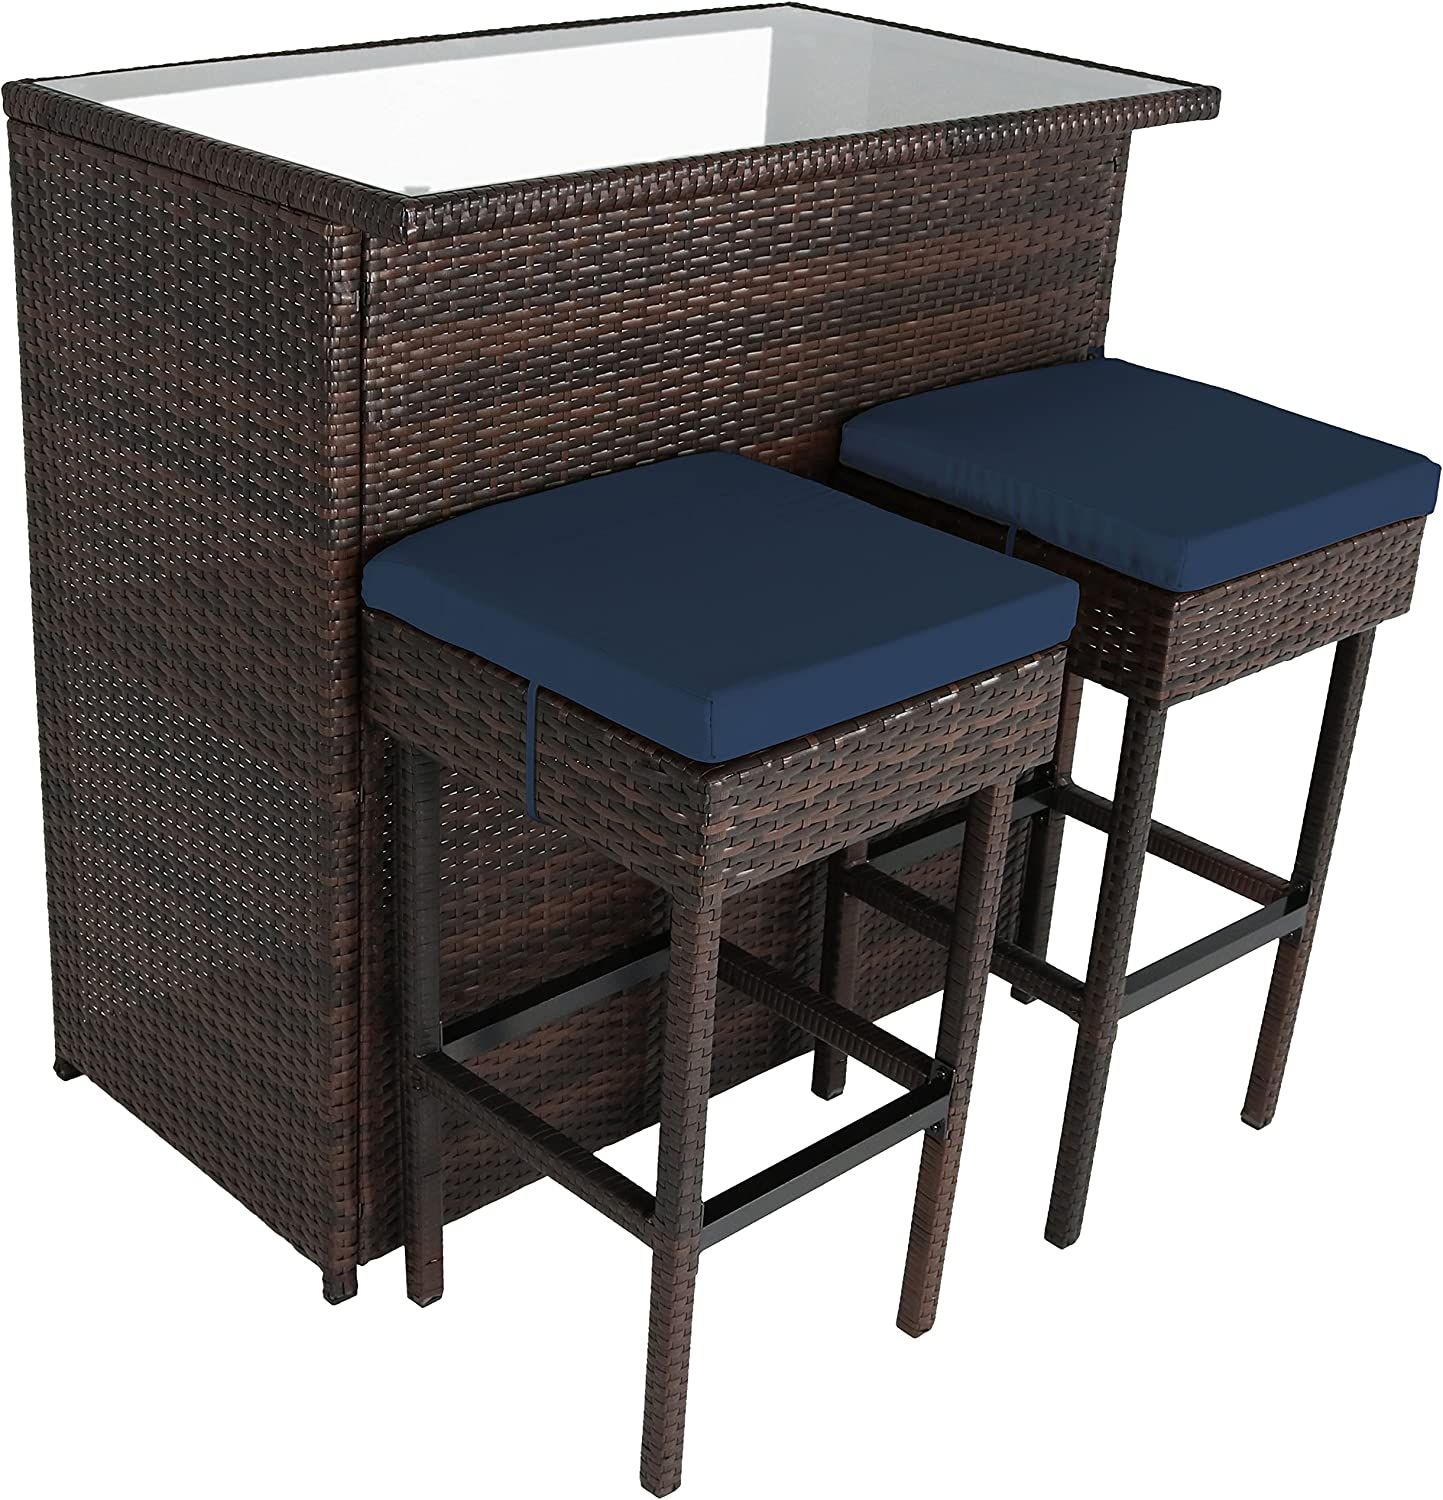 Sunnydaze Melindi 3-Piece Outdoor Patio Bar Furniture Set, Wicker Rattan – Includes Bar Table, 2 Stools, and Blue Cushions